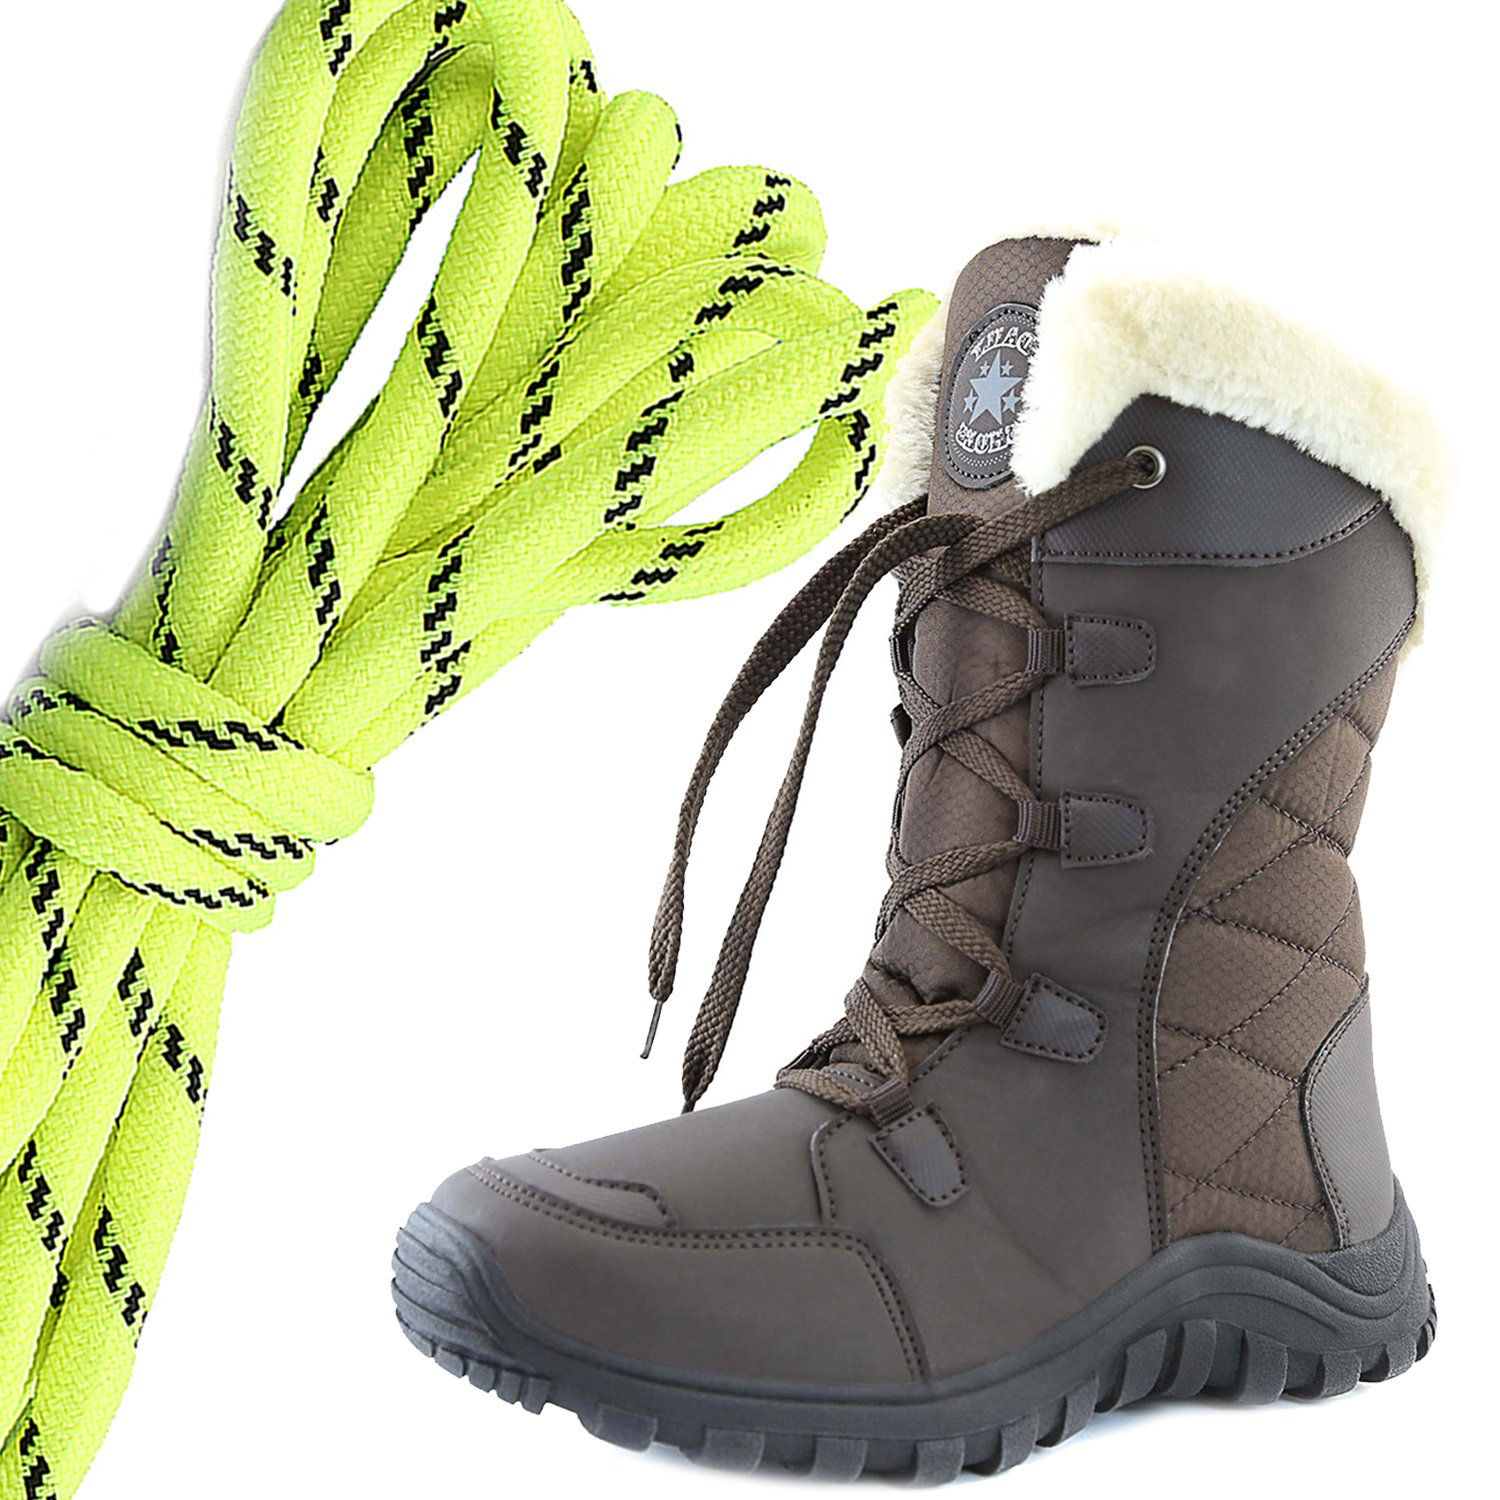 Neon Yellow Black DailyShoes Womens Comfort Round Toe Mid Calf Hiking Outdoor Ankle High Eskimo Winter Fur Snow Boots